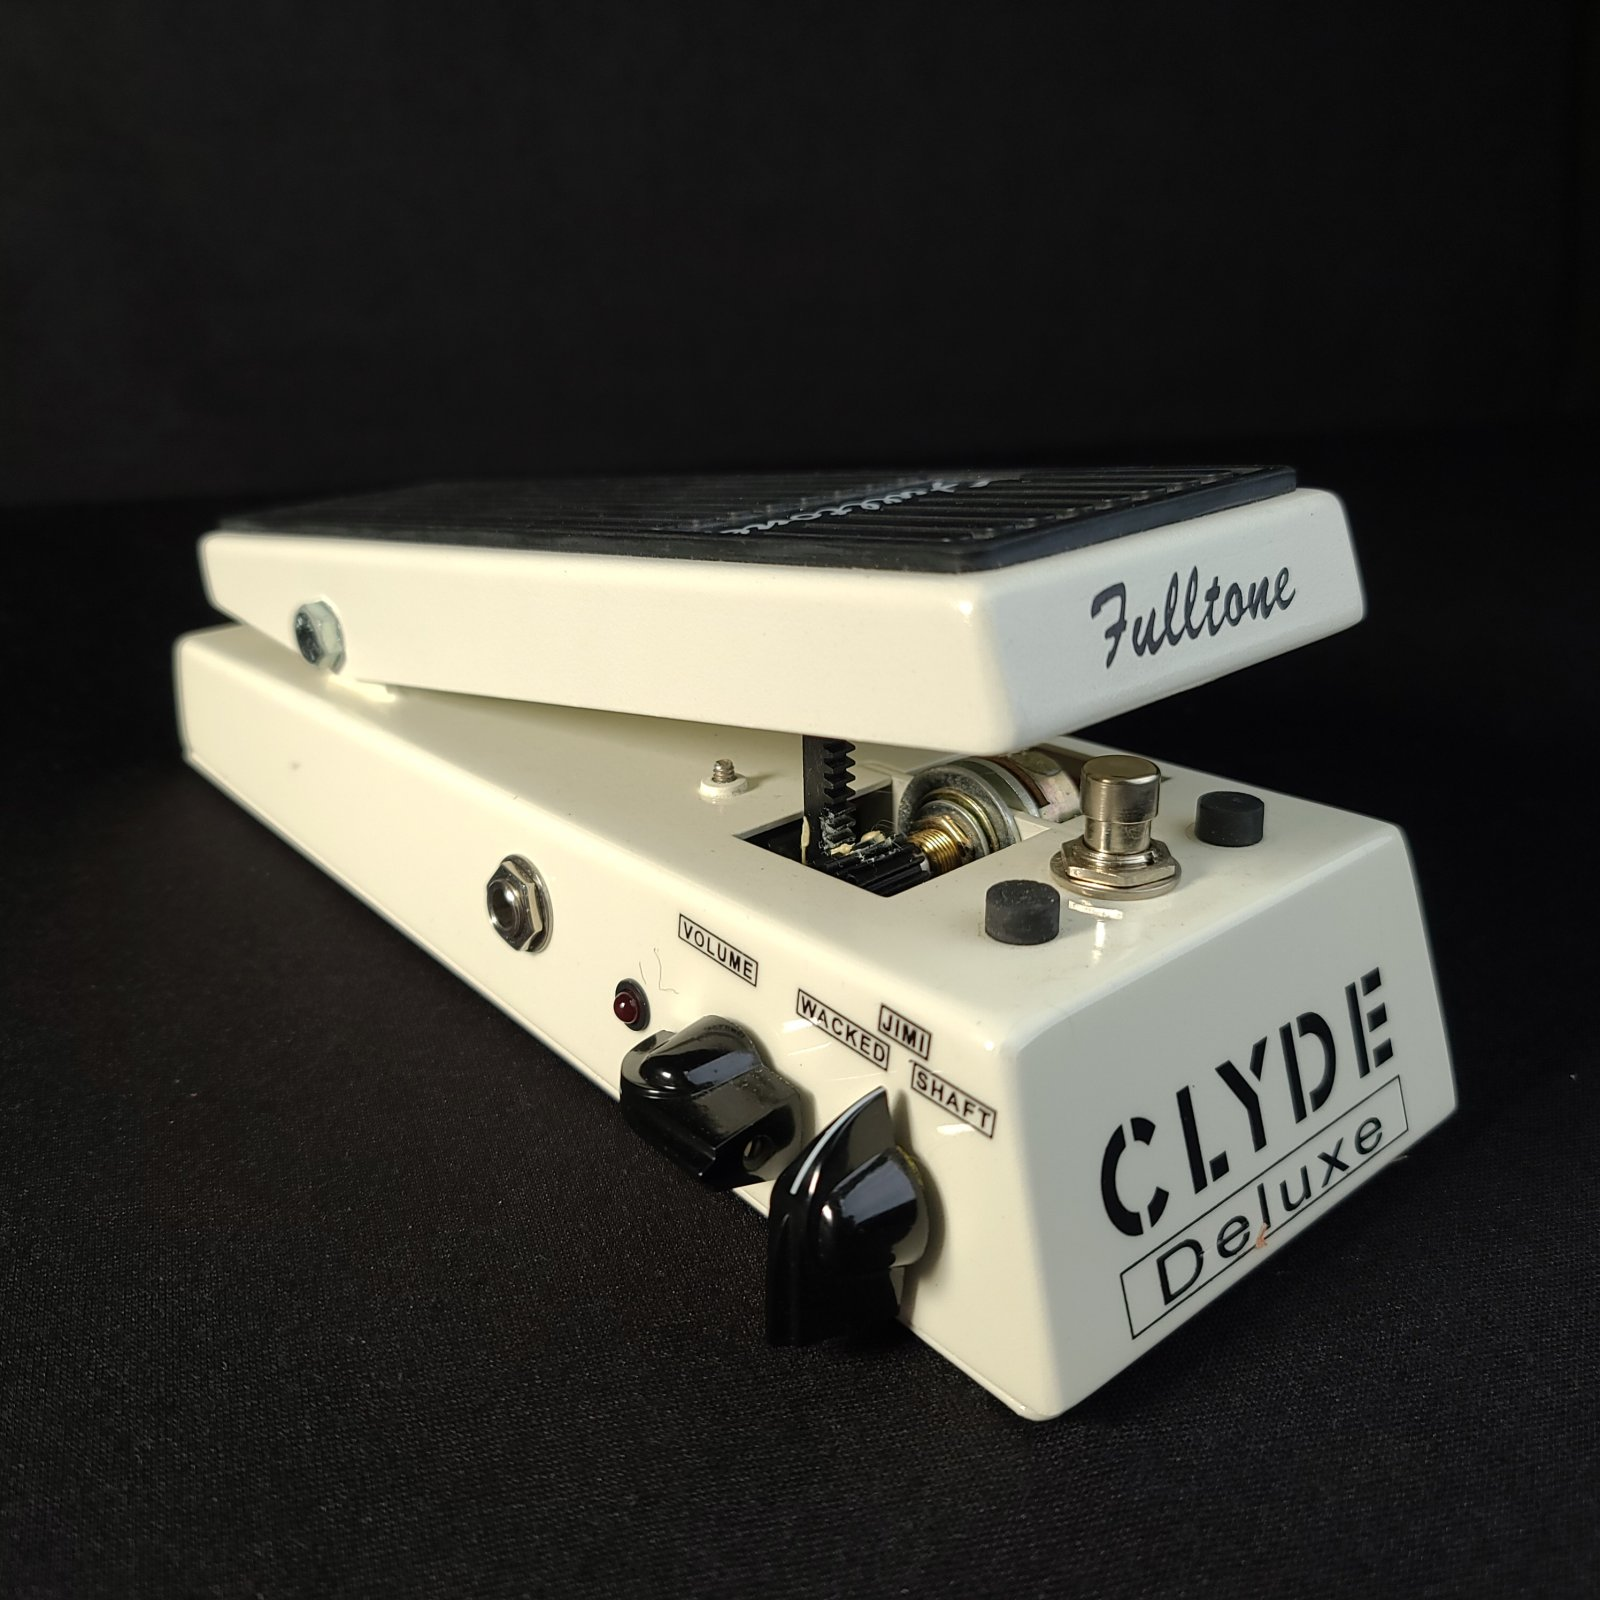 Used Fulltone Clyde Deluxe Wah Pedal